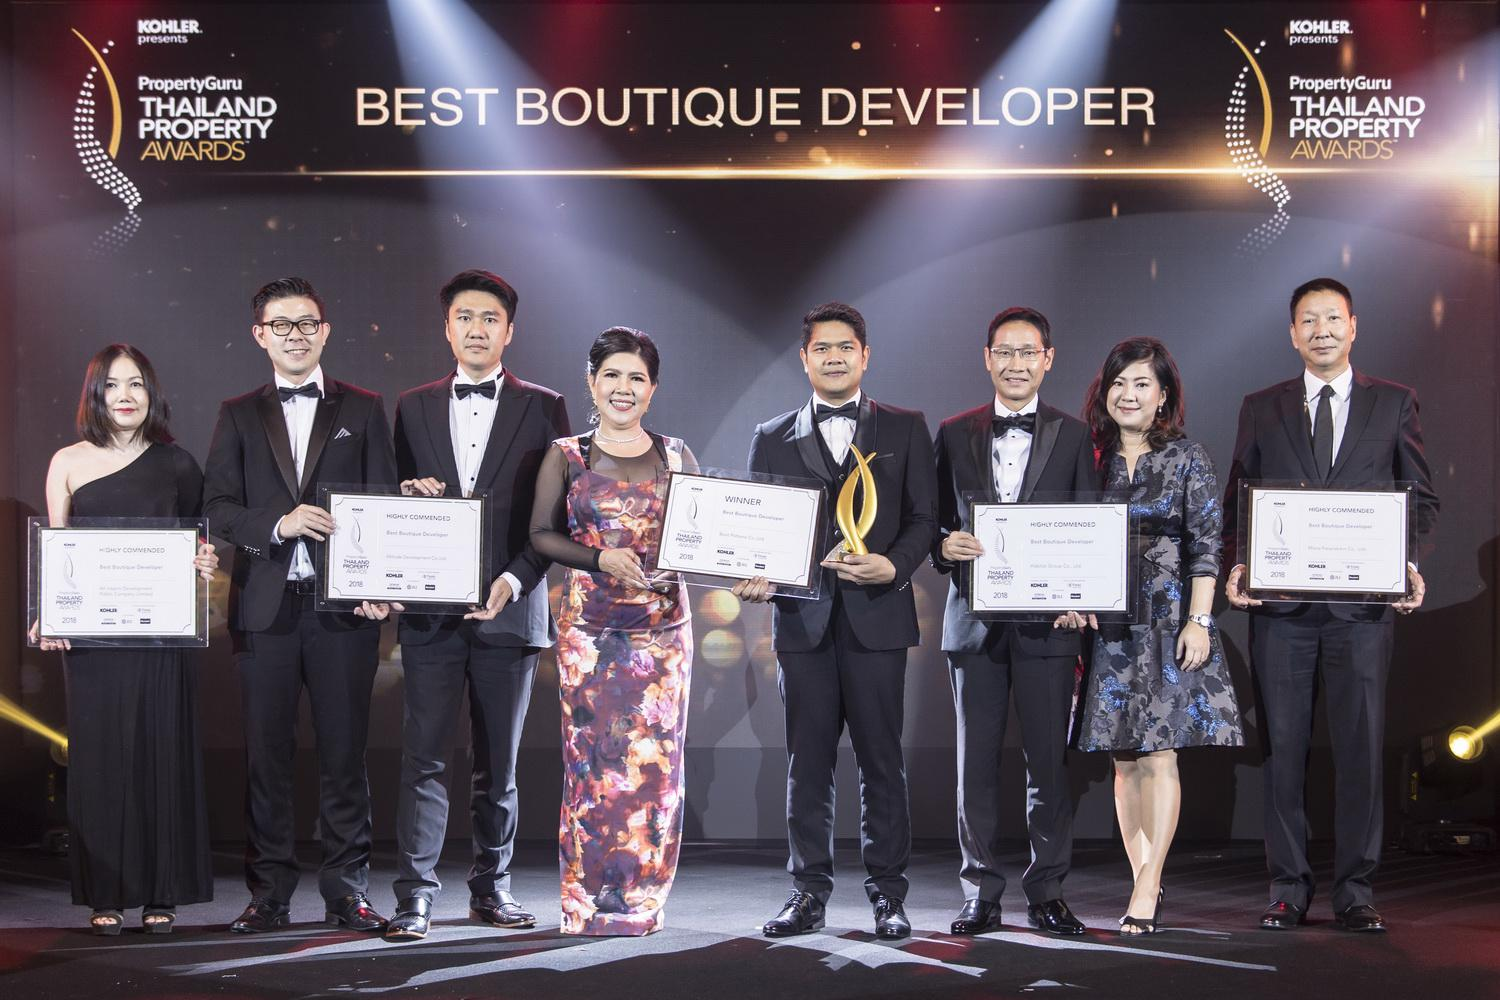 Best Boutique Developer